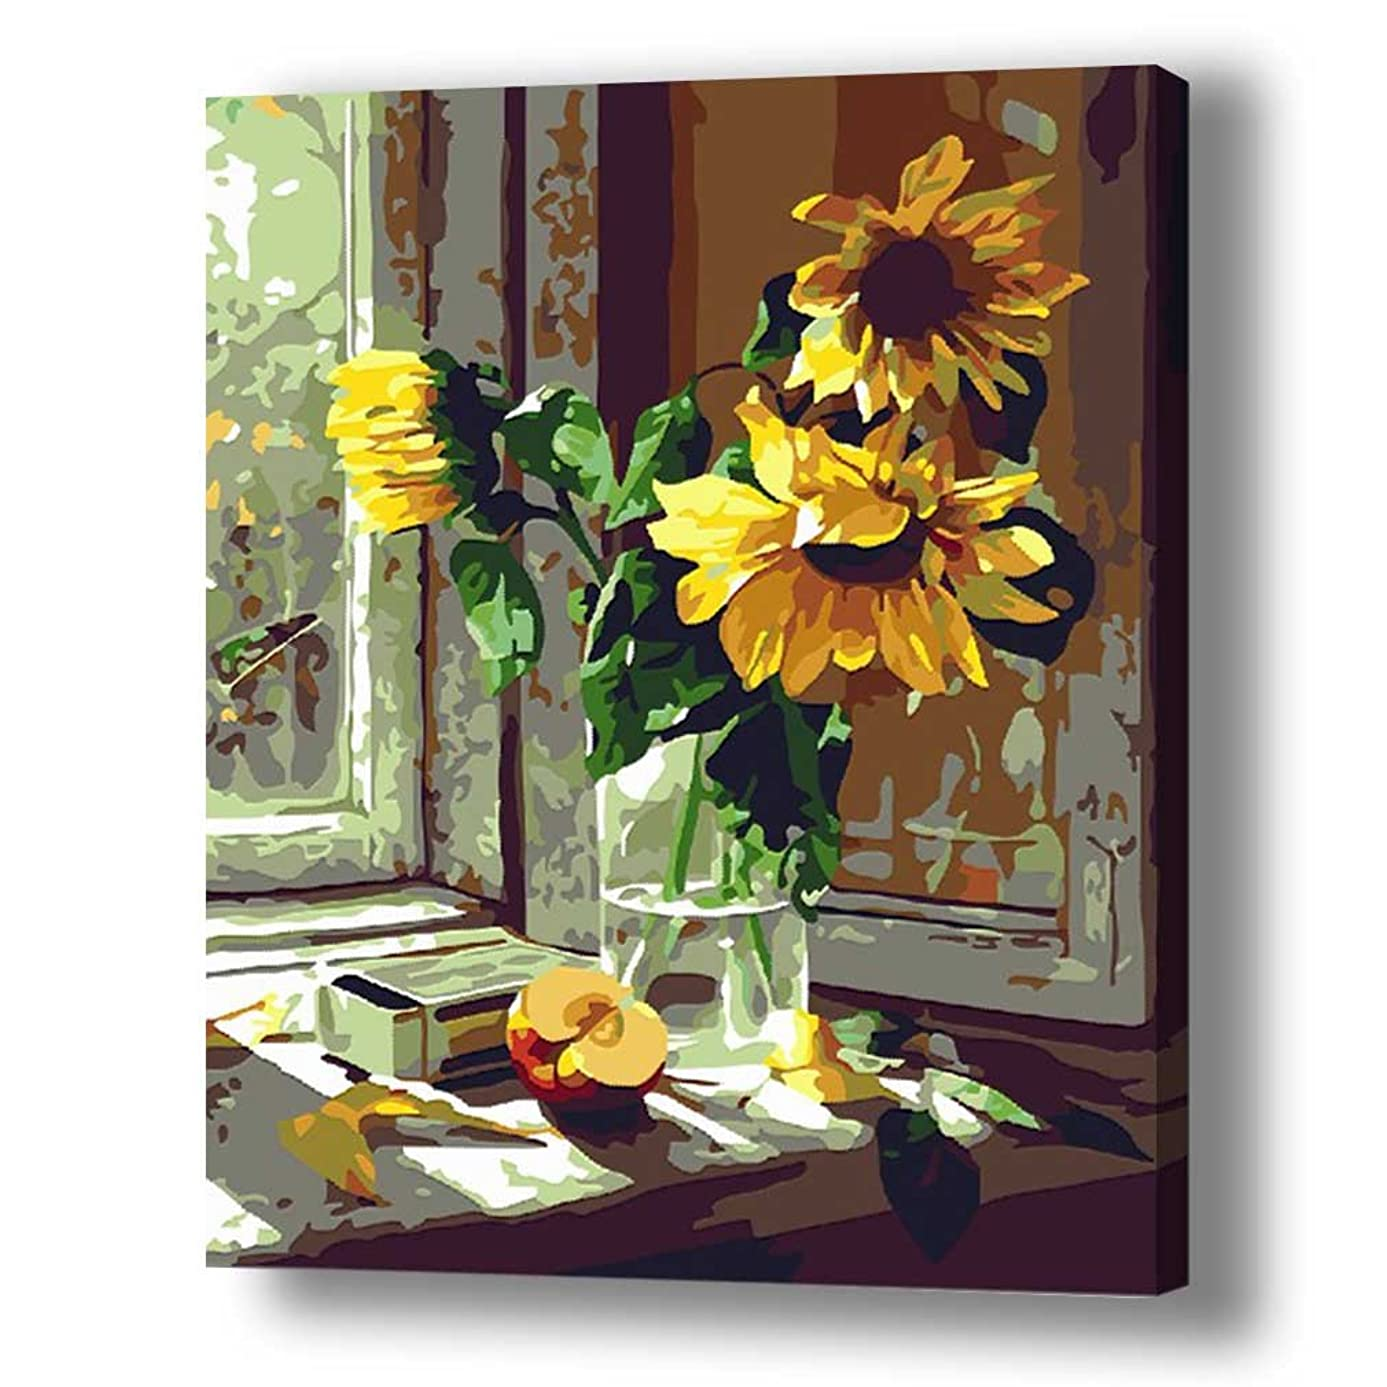 TwoSteps 24x30inch Large Paint by Numbers for Adults Kids Paint by Number Kits Linen Canvas Fine Paintbrushes Sunflowers by The Window